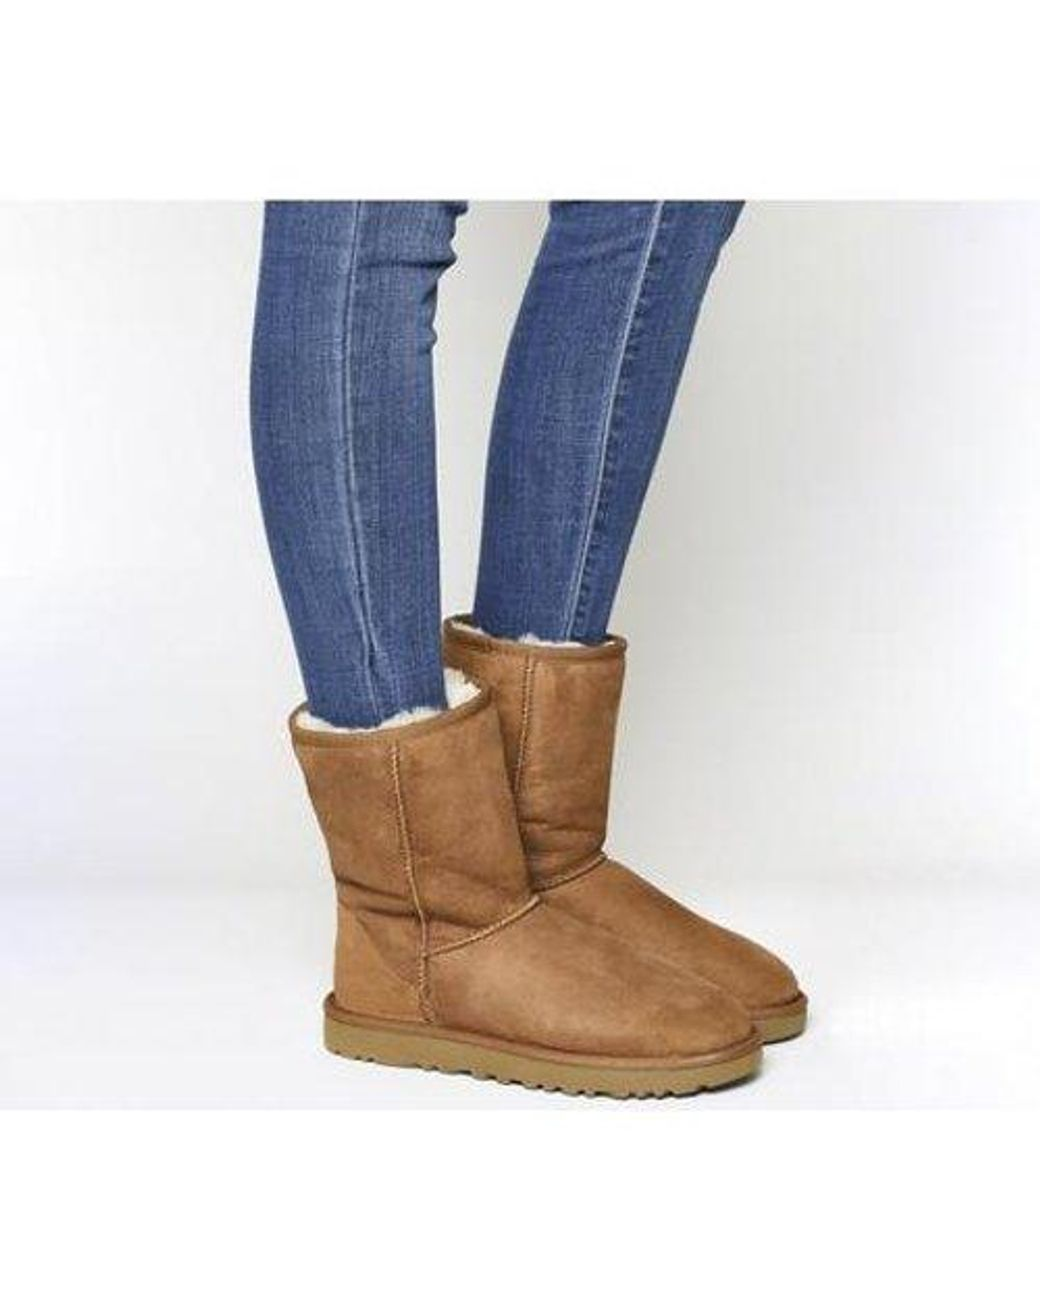 UGG Suede Classic Short Ii Boots in Tan